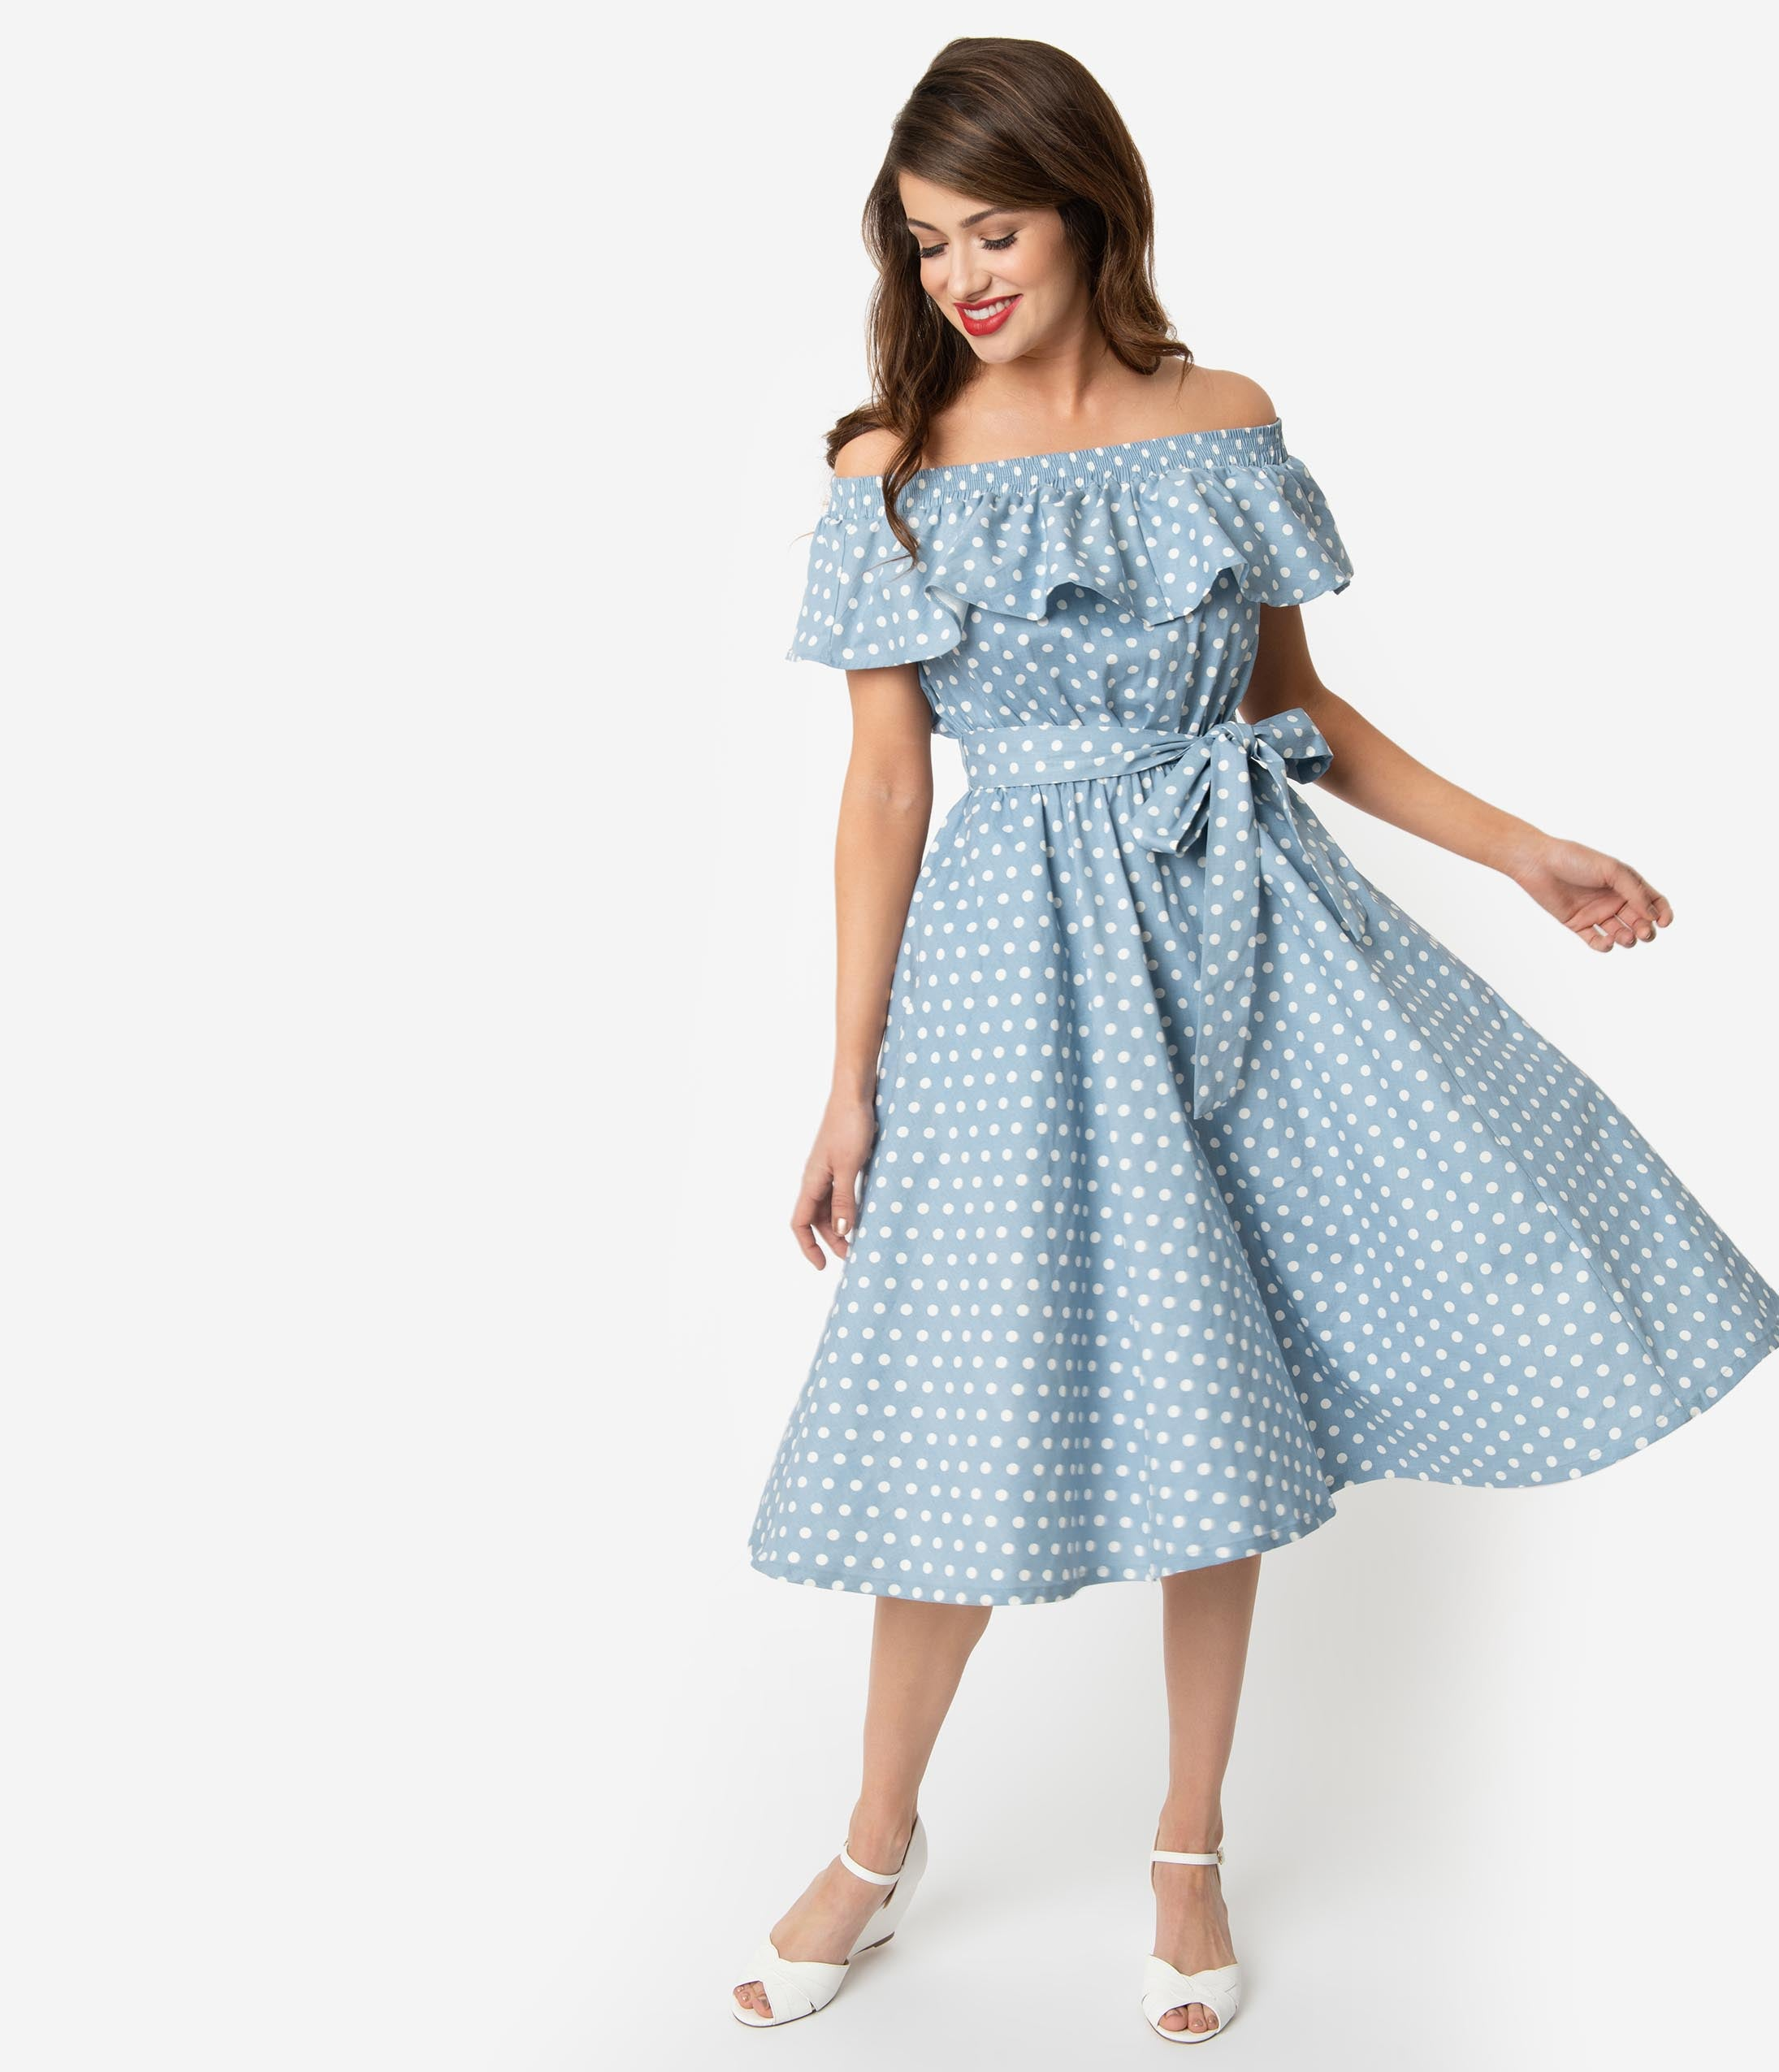 103ec42c8f Unique Vintage Dusty Blue   White Polka Dot Off Shoulder Ruffle Nashville  Swing Dress · 1950s Style ...